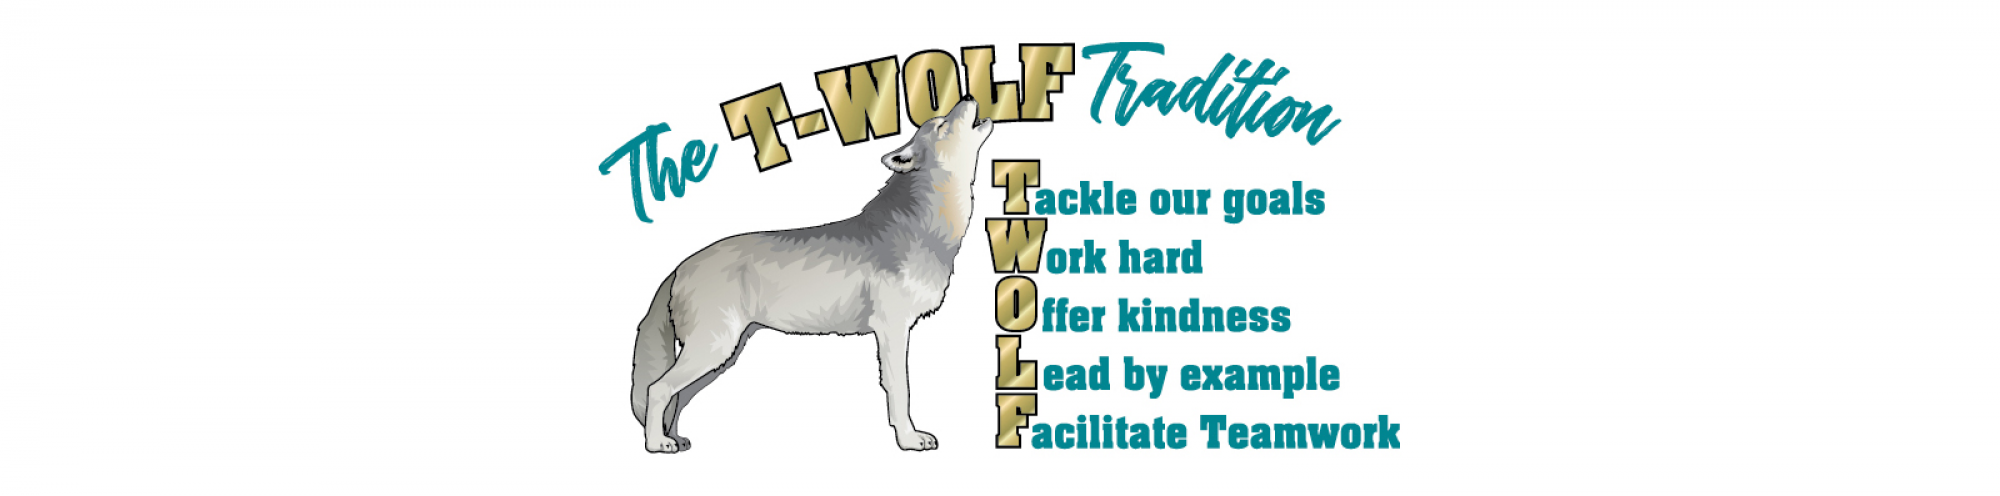 The T-WOLF Tradition Banner